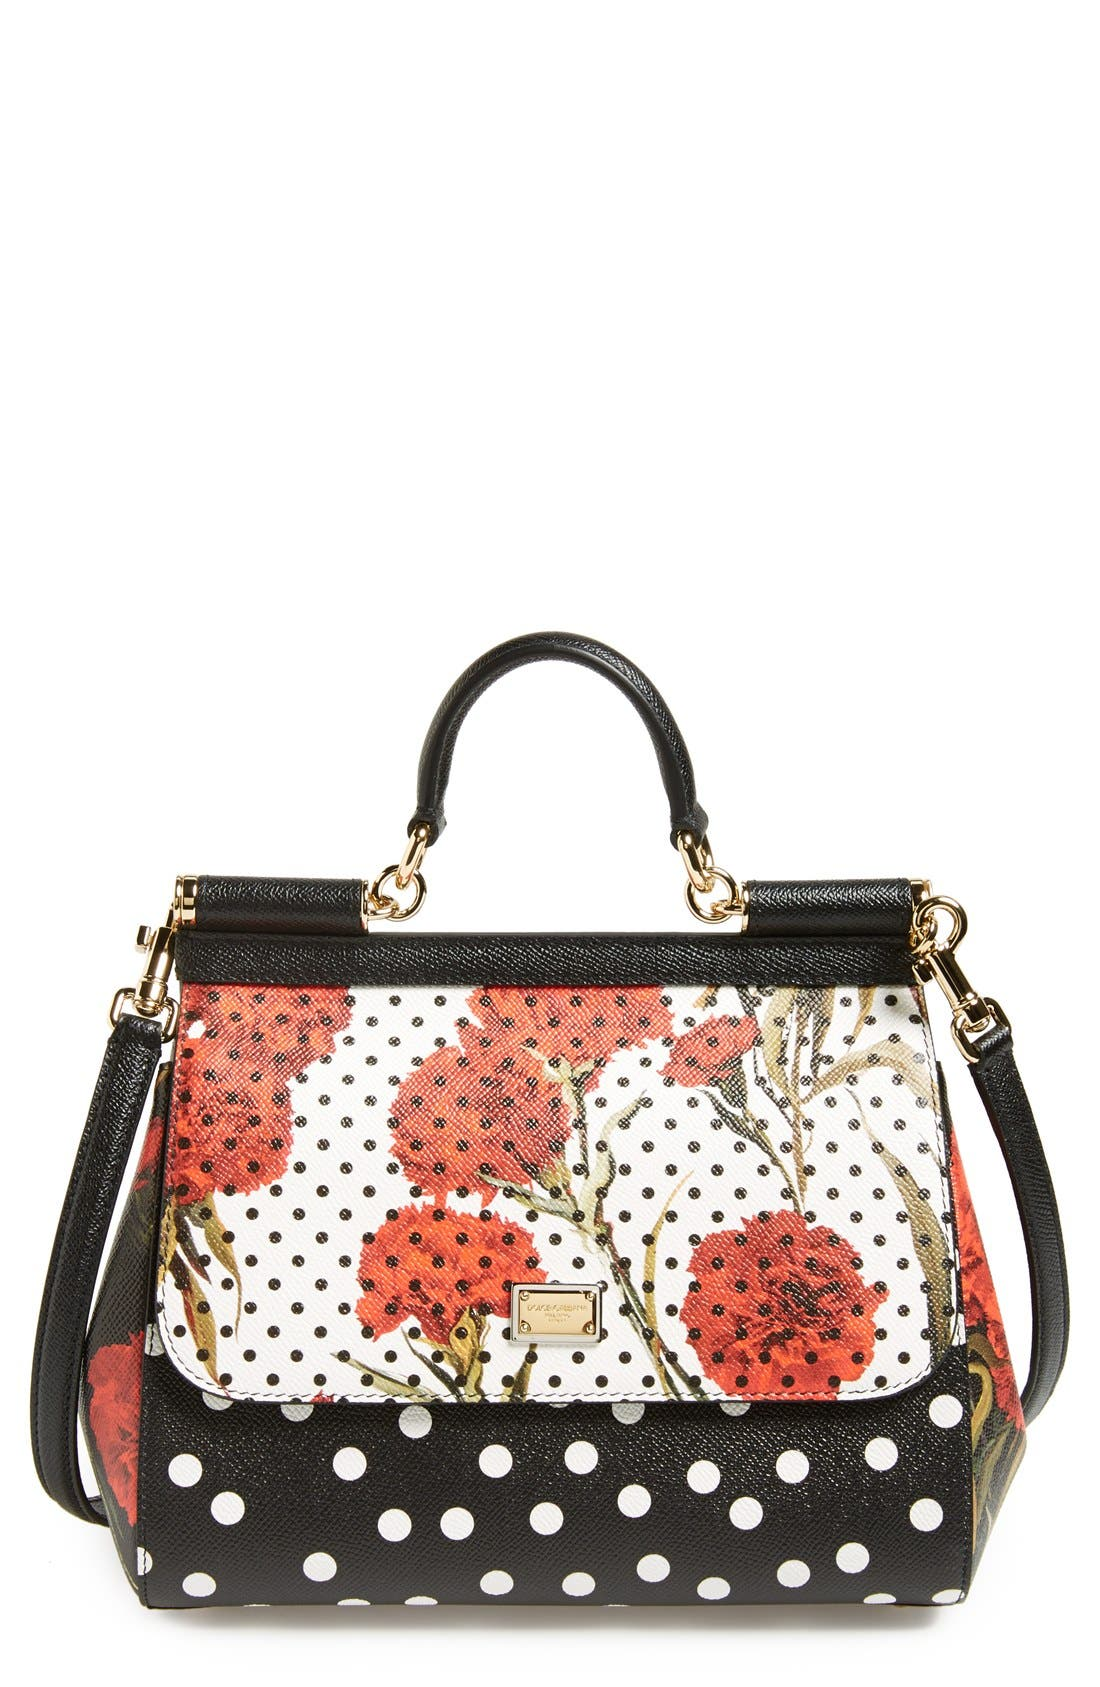 Alternate Image 1 Selected - Dolce&Gabbana 'Miss Sicily' Floral Print Satchel